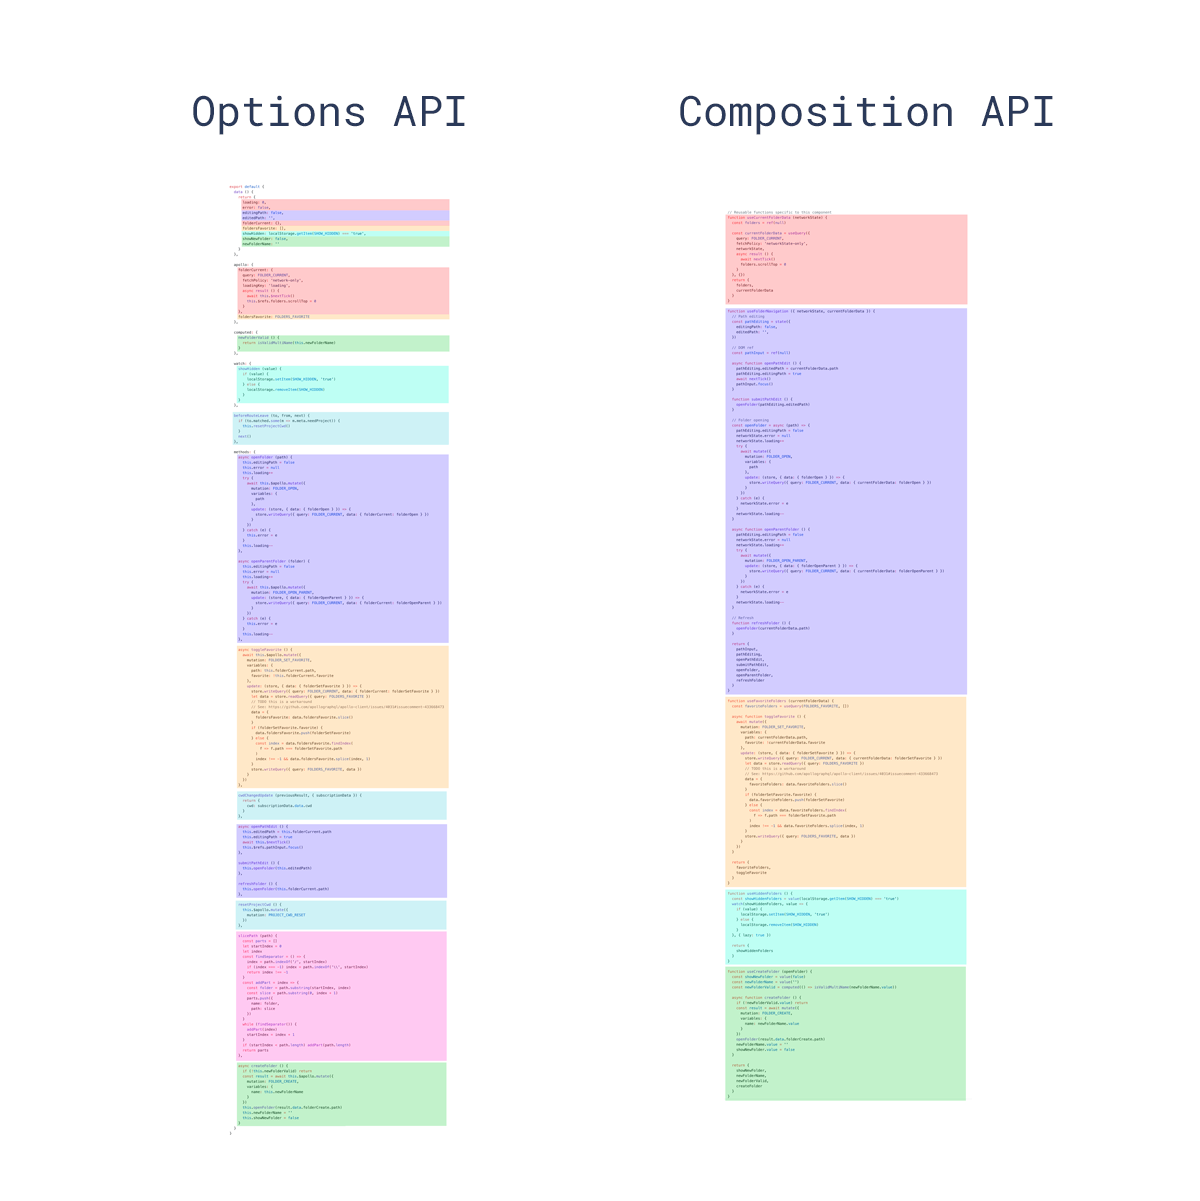 Vue 3 Composition API vs Options API code structure